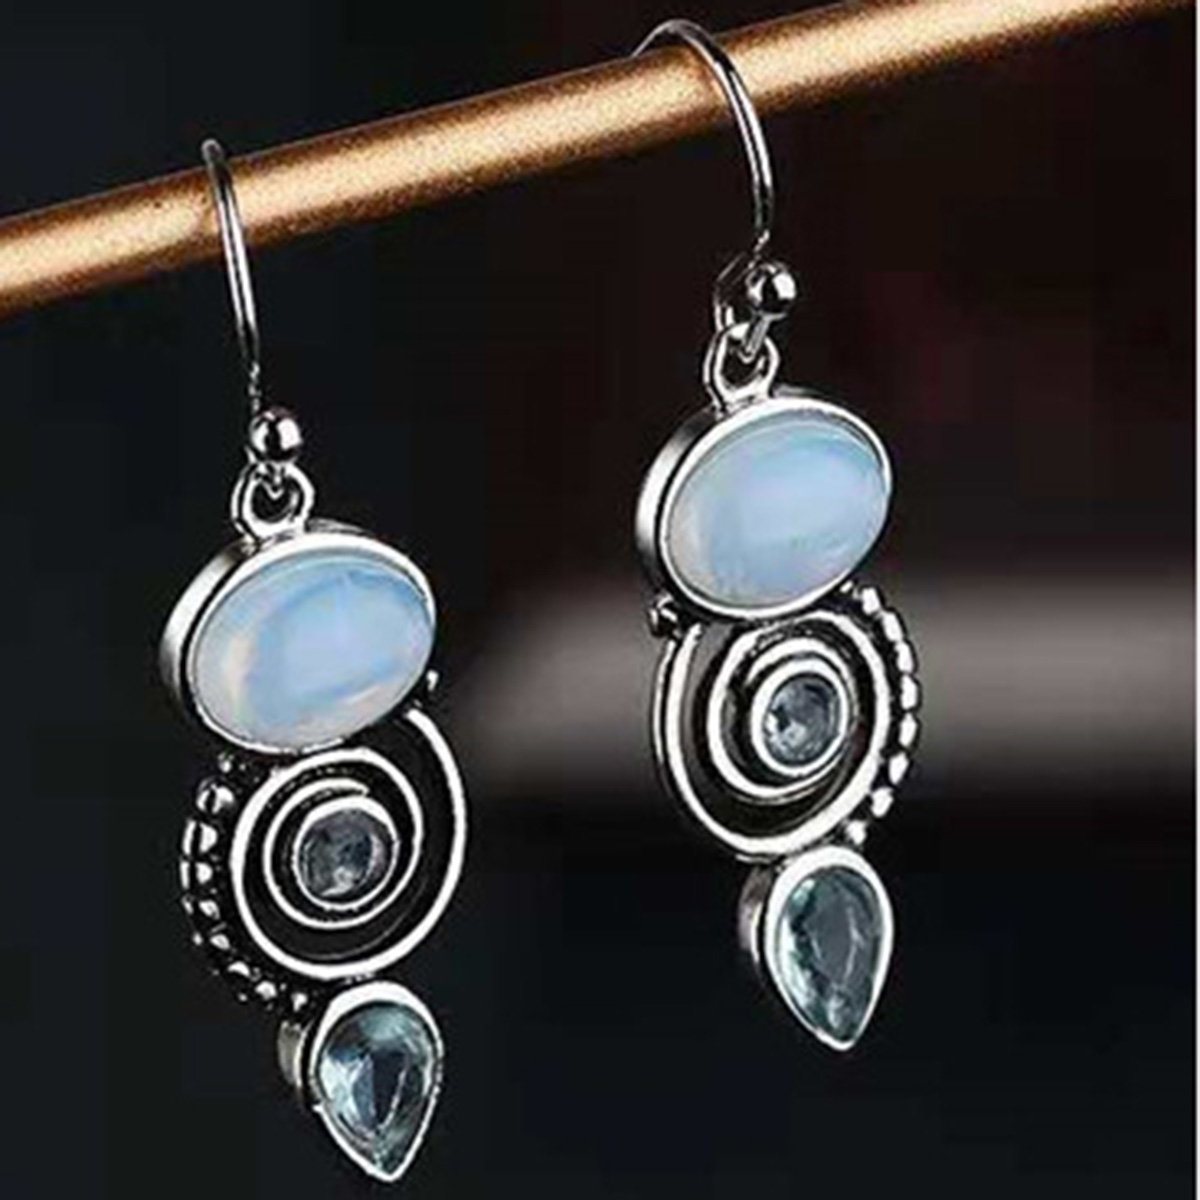 Vintage Ethnic Bohemian Style Crystal Spiral Dangle Earrings Silver Plated Hollow Round Drop Earrings Elegant Jewelry For Women